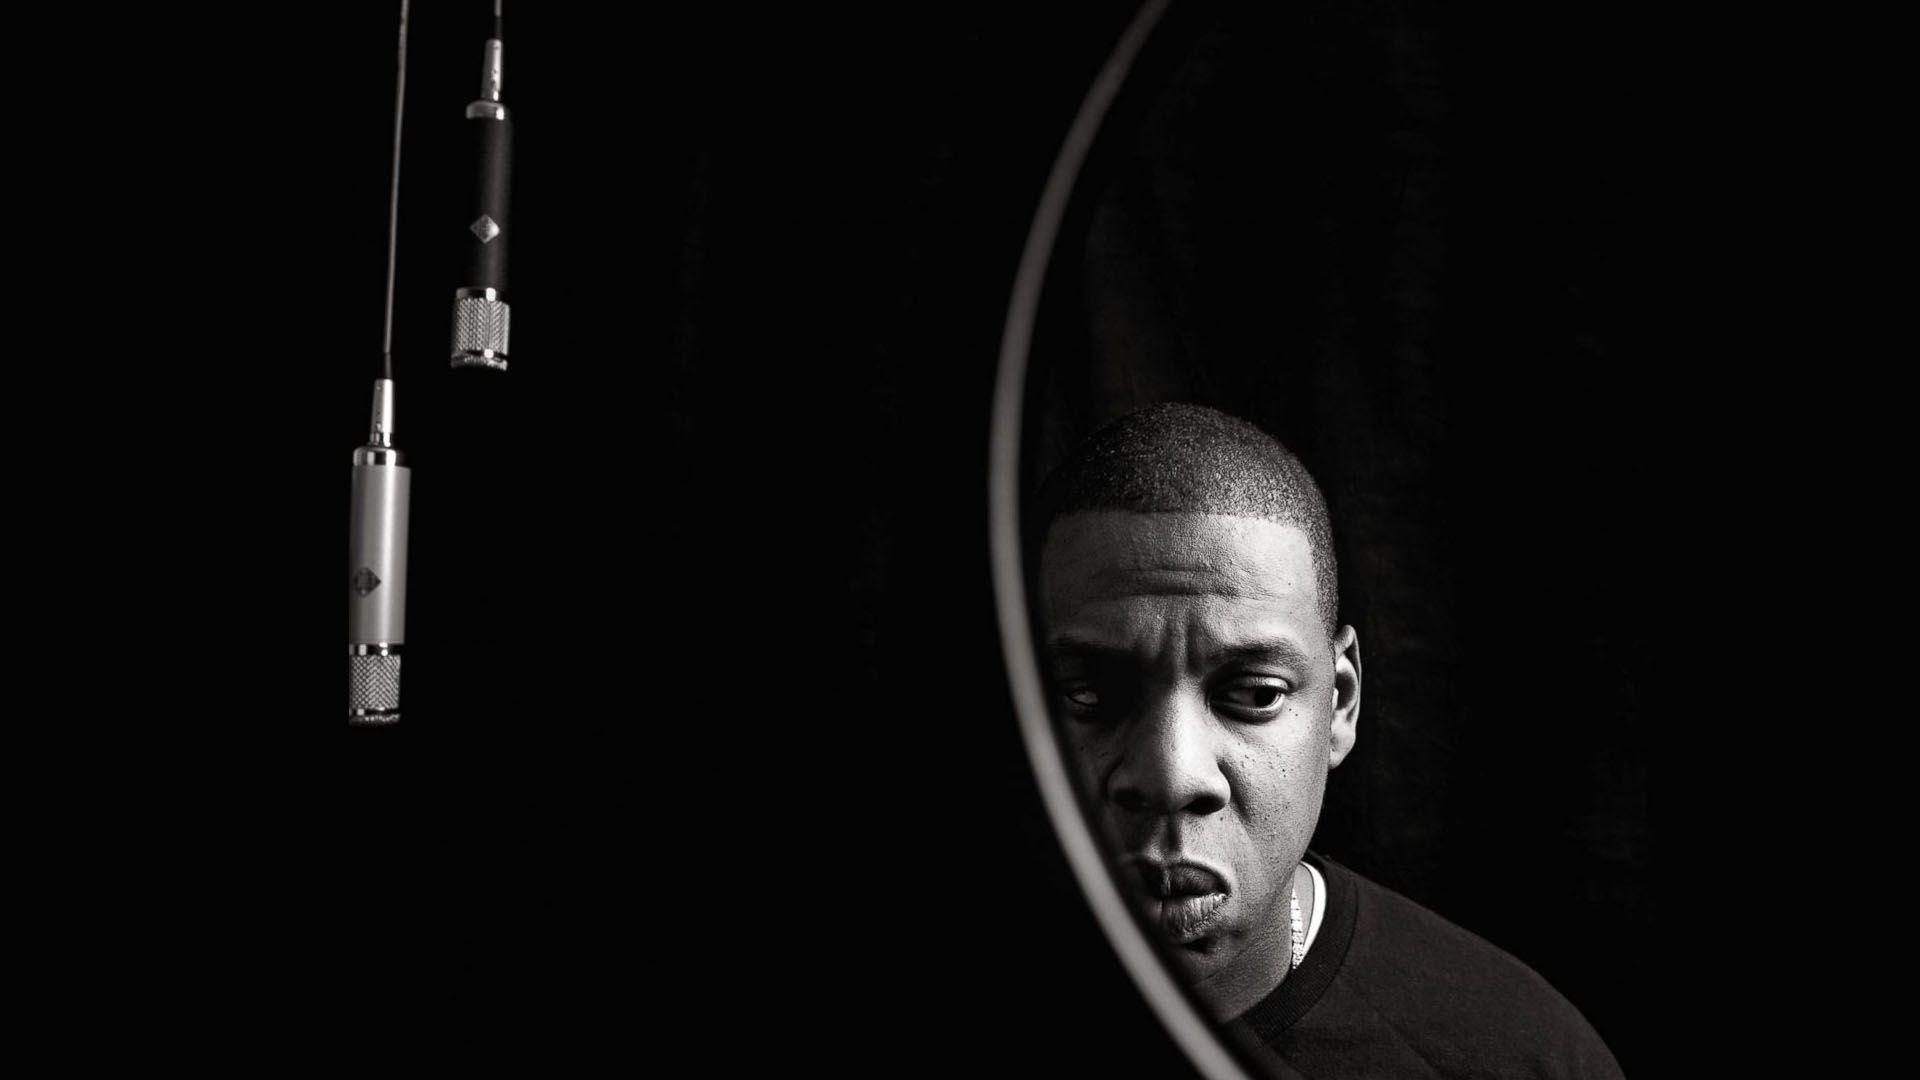 Jay Z Photoshoot By Danny Clinch